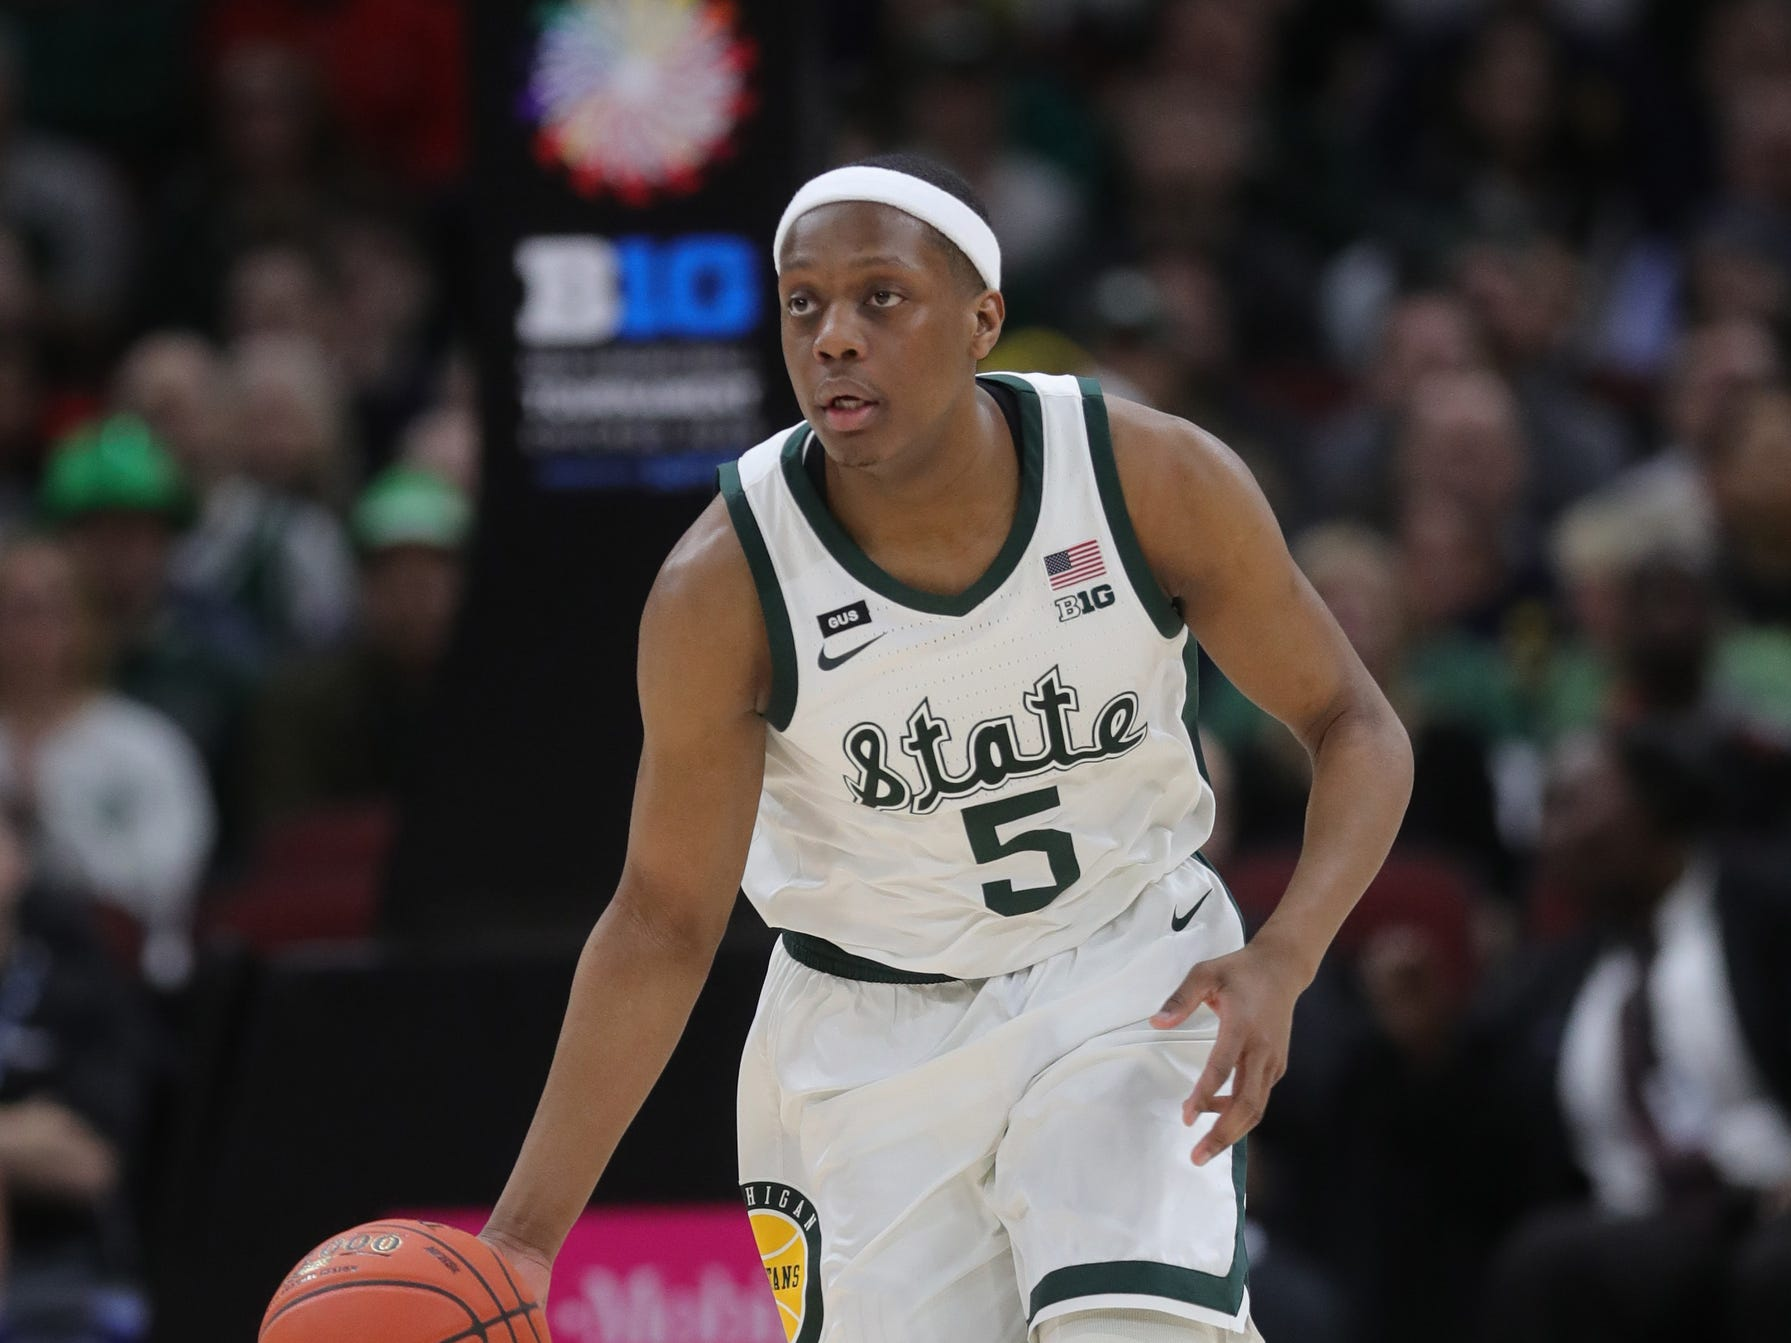 Michigan State's Cassius Winston brings the ball up court during the first half against Michigan in the Big Ten tournament championship Sunday, March 17, 2019 in Chicago.